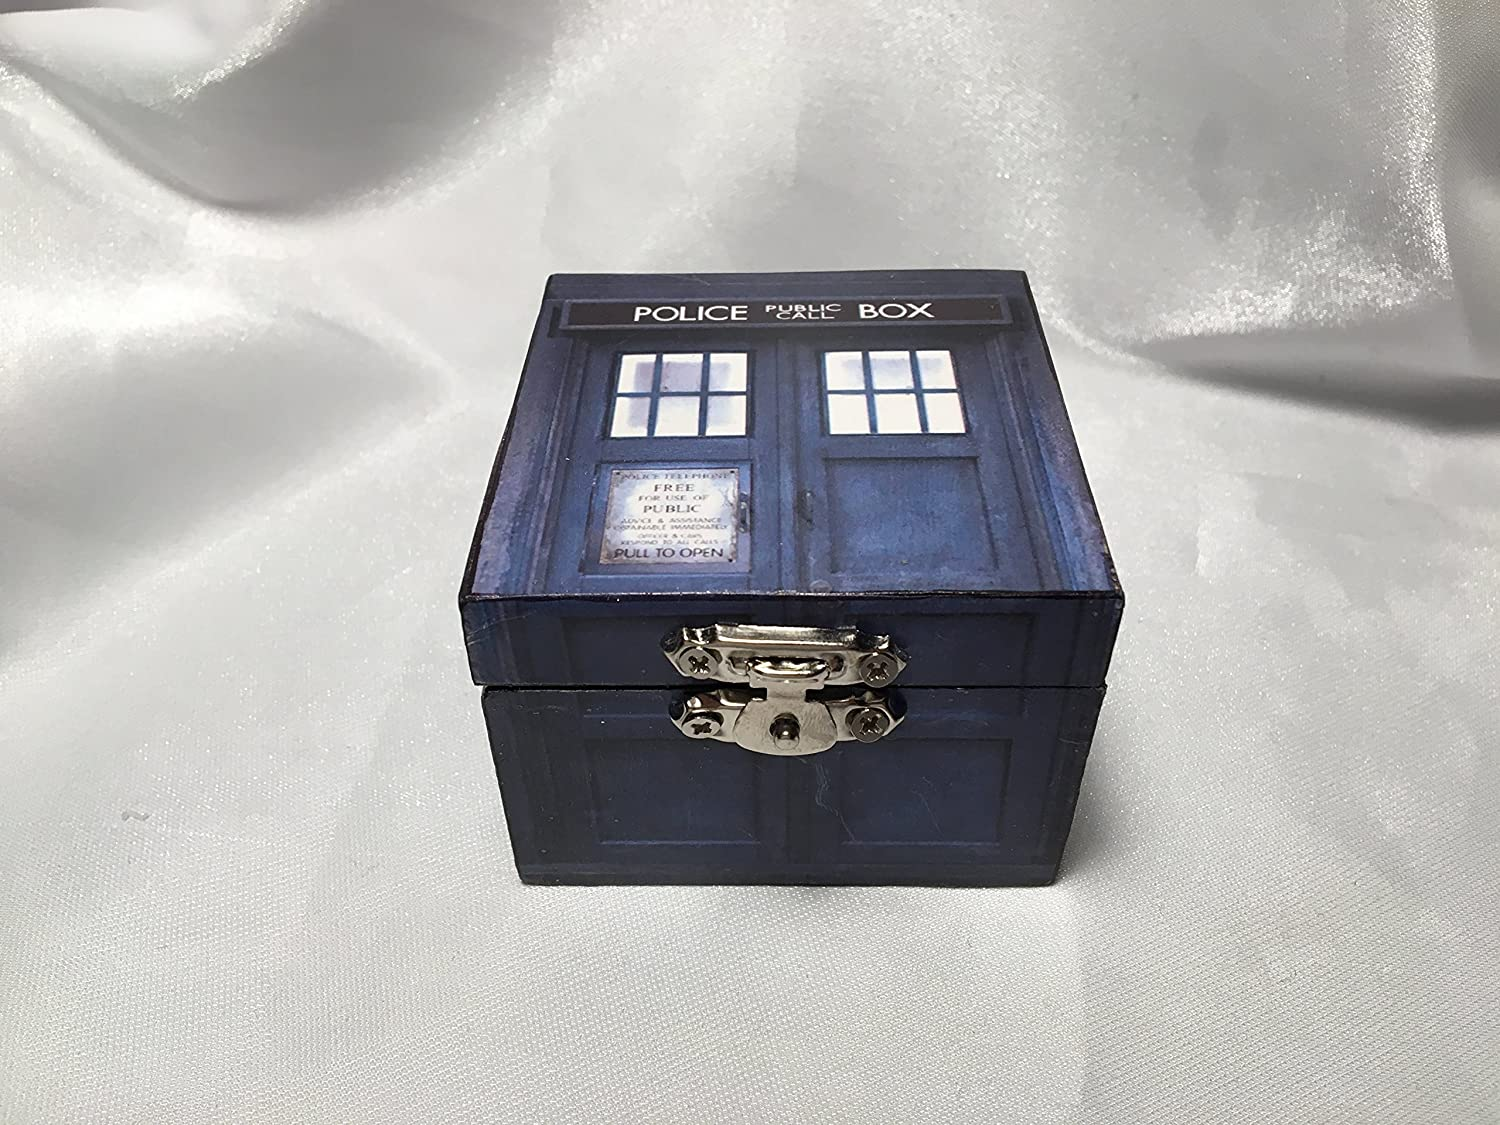 Tardis Doctor Who TIme Lord Inspired Proposal Engagement Ring Box Bearer Pillow Box Customizable